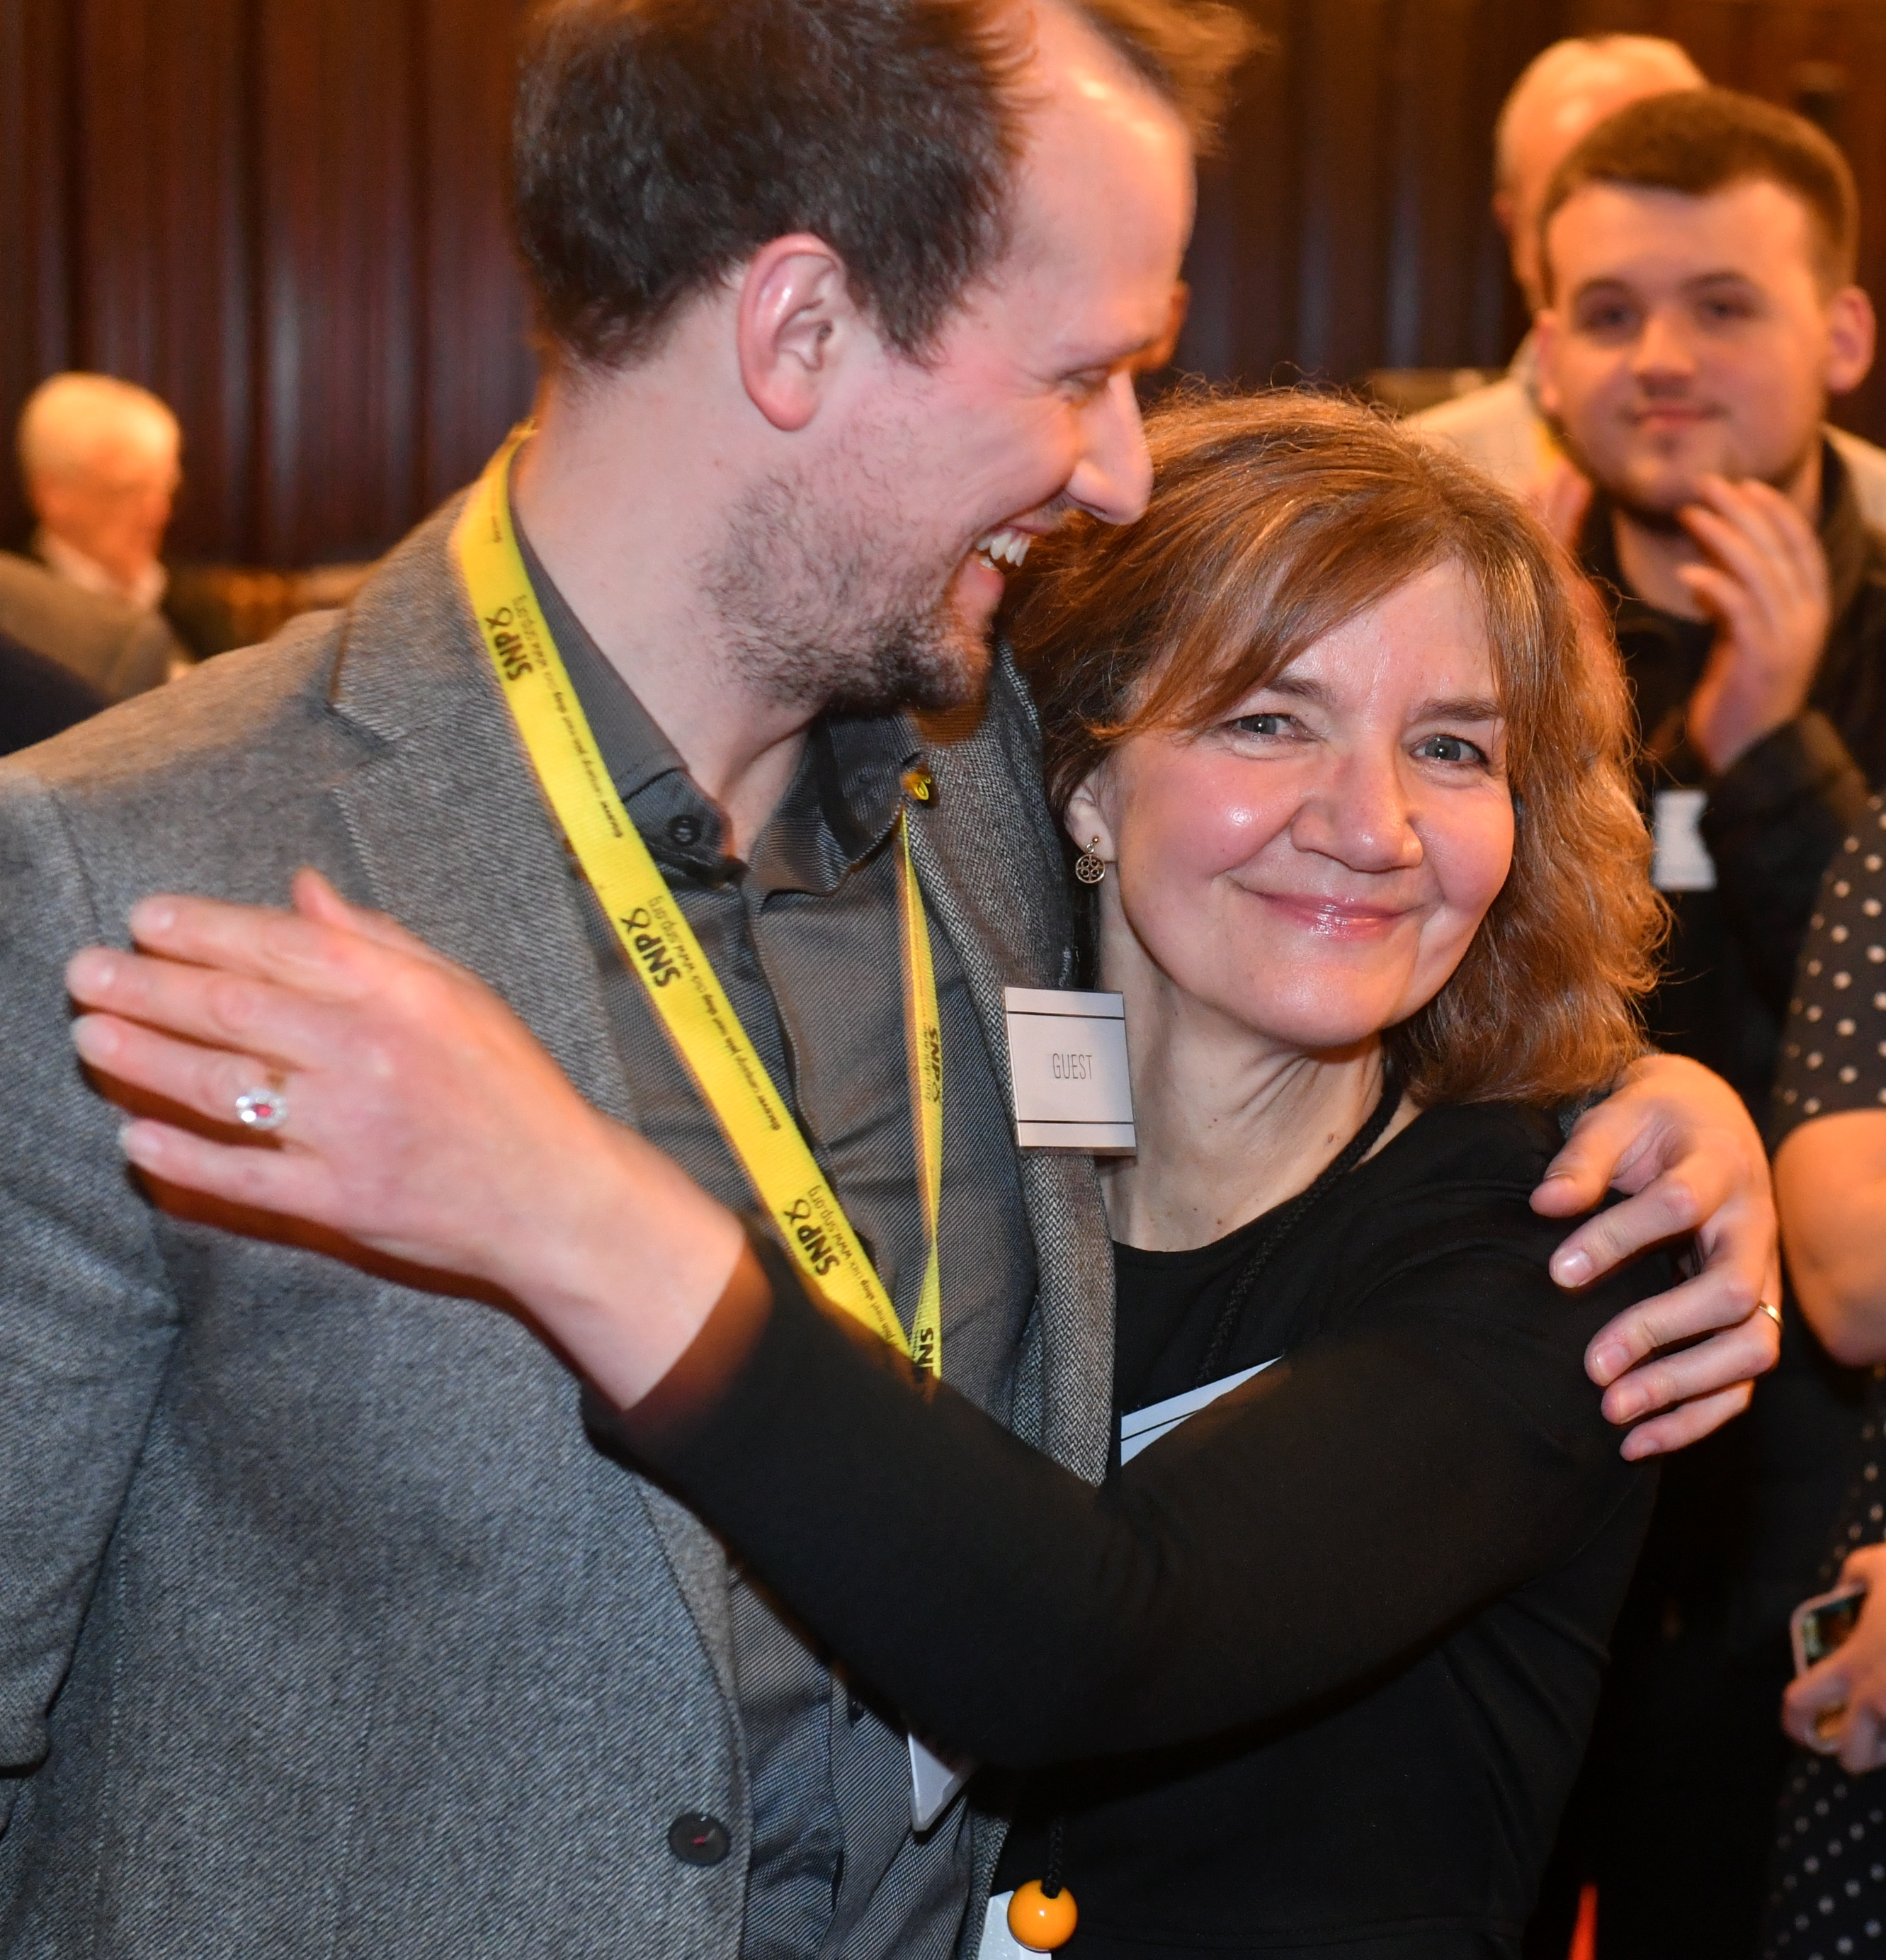 SNP group leader Stephen Flynn celebrates with new SNP councillor Audrey Nicoll.